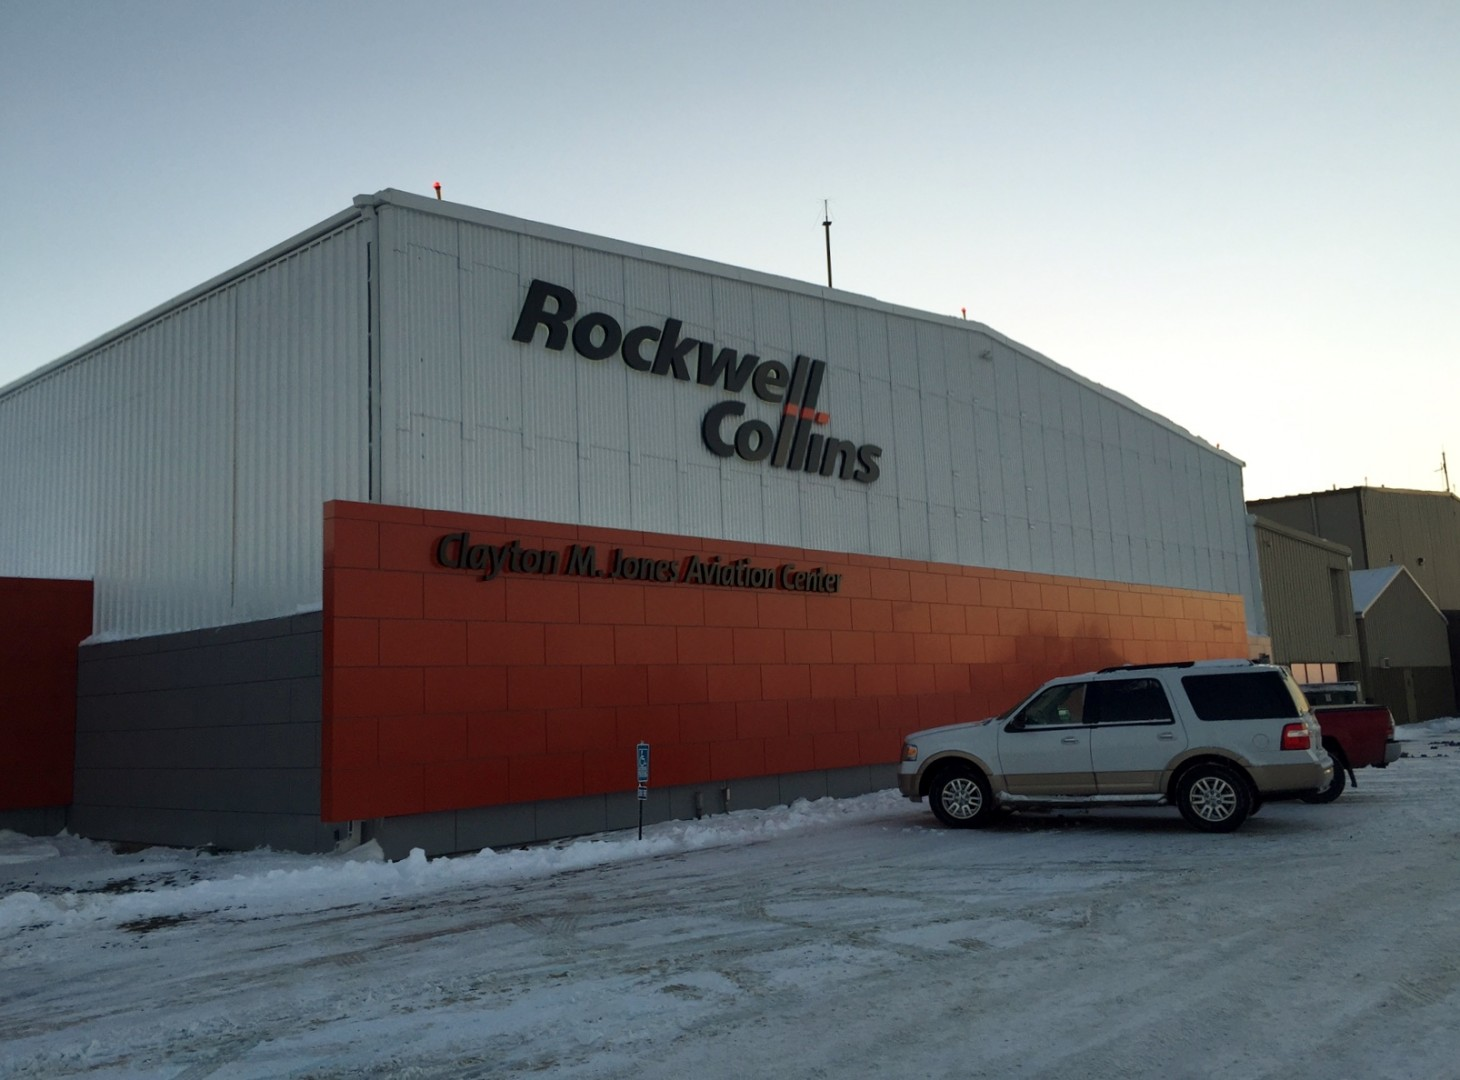 Rockwell Collins Aviation Hangar (Cedar Rapids)